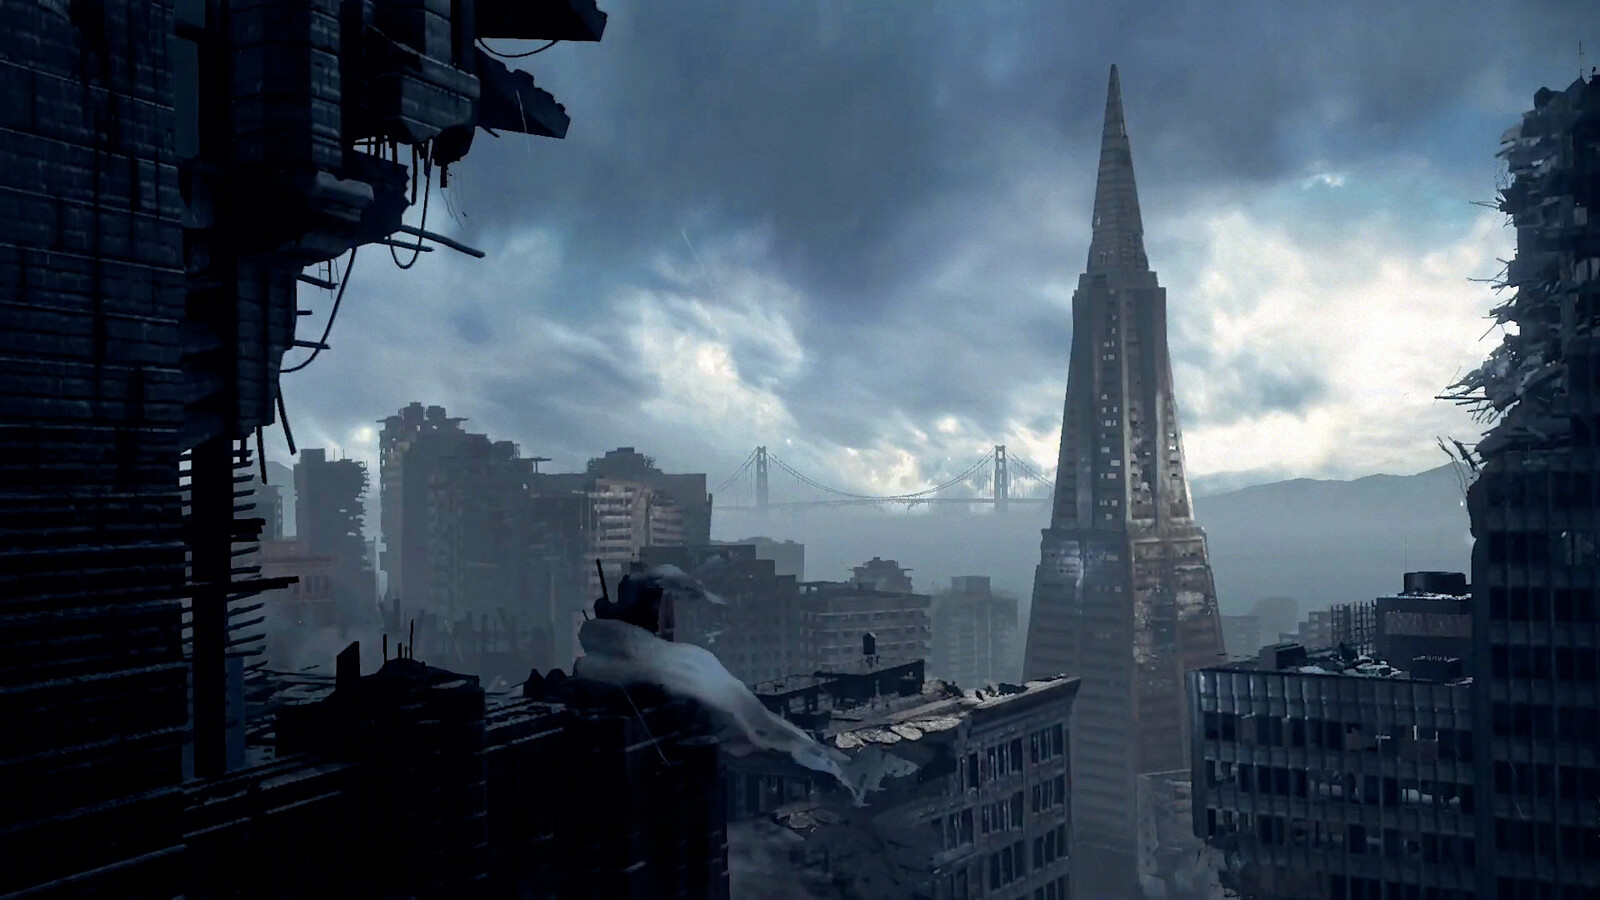 Full Modeling / Texturing: Foreground Building, Transamerica Pyramid; Scene Assembly, Matte Painting